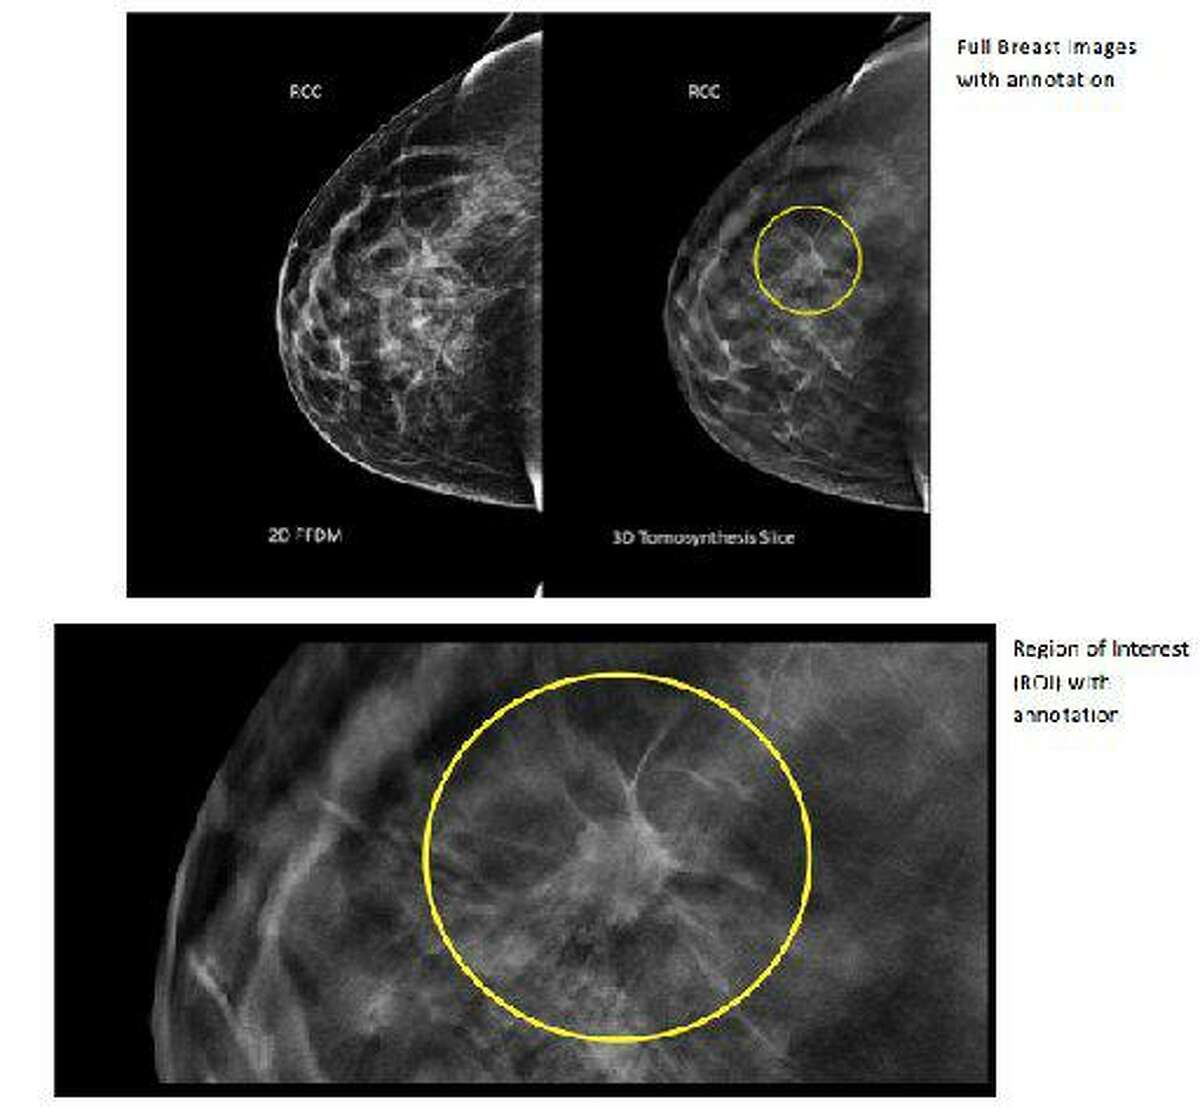 This undated combination provided by Hologic shows three images, an image taken using conventional mammography, top left, an image using 3D mammography, top right, with a tumor circled that wasn't visible on the first image, and a close up image of the region of interest on the 3D mammography.